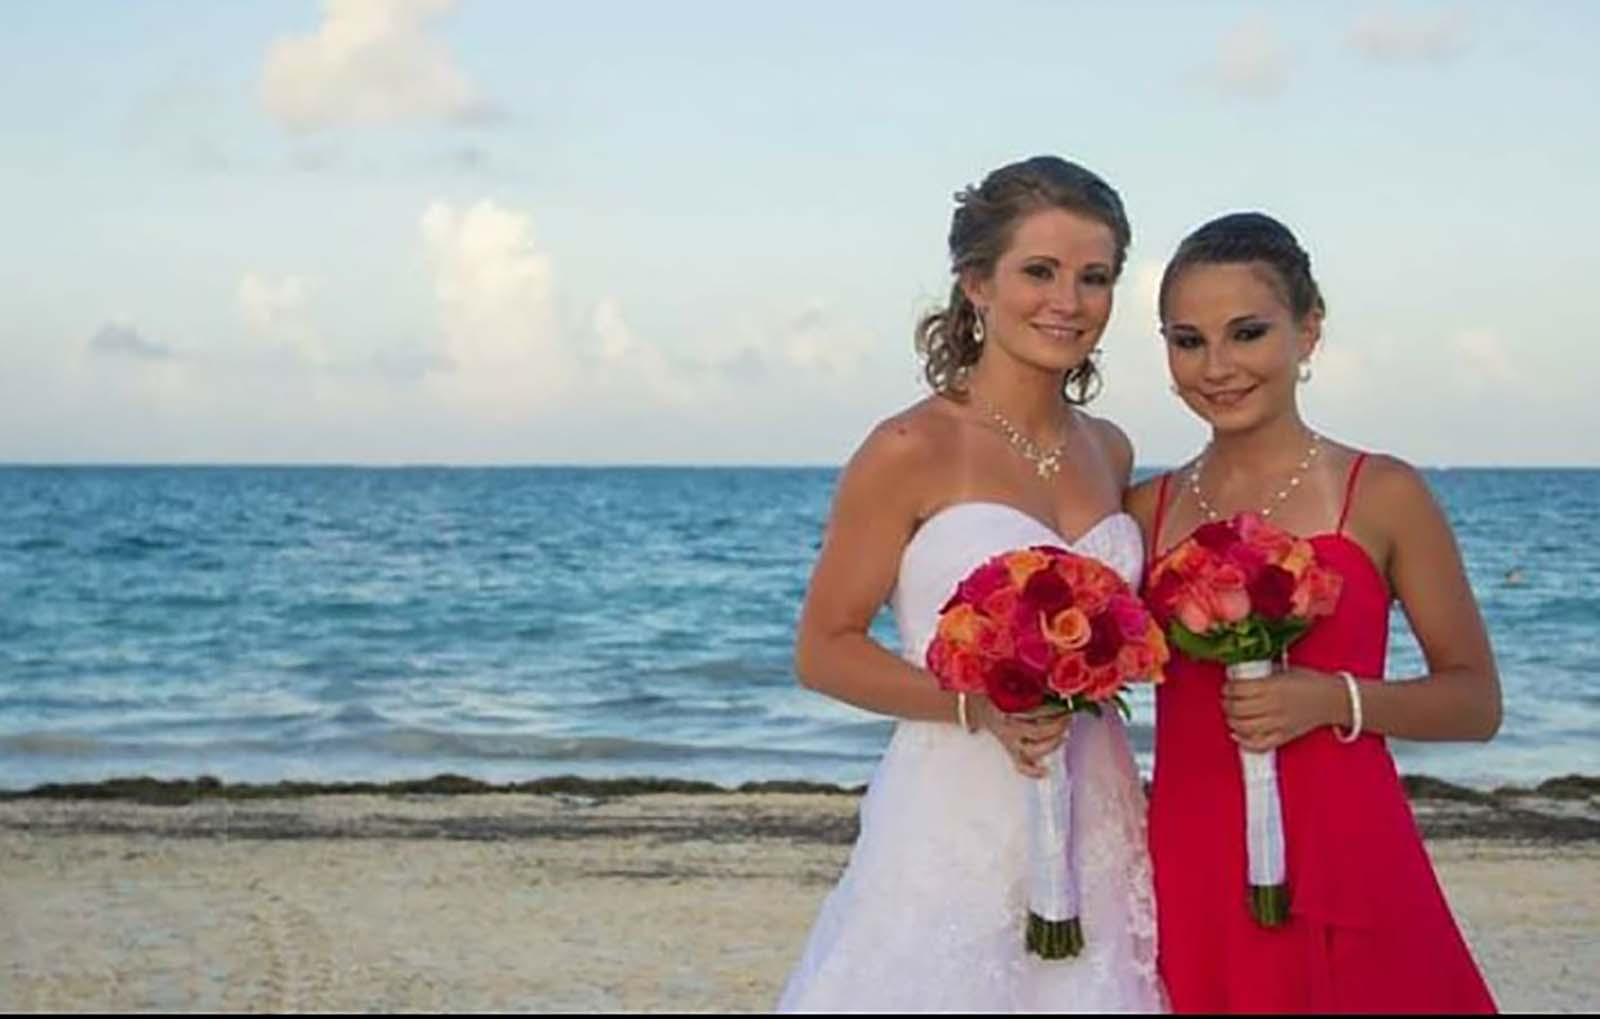 Bride and bridesmaid on beach for wedding